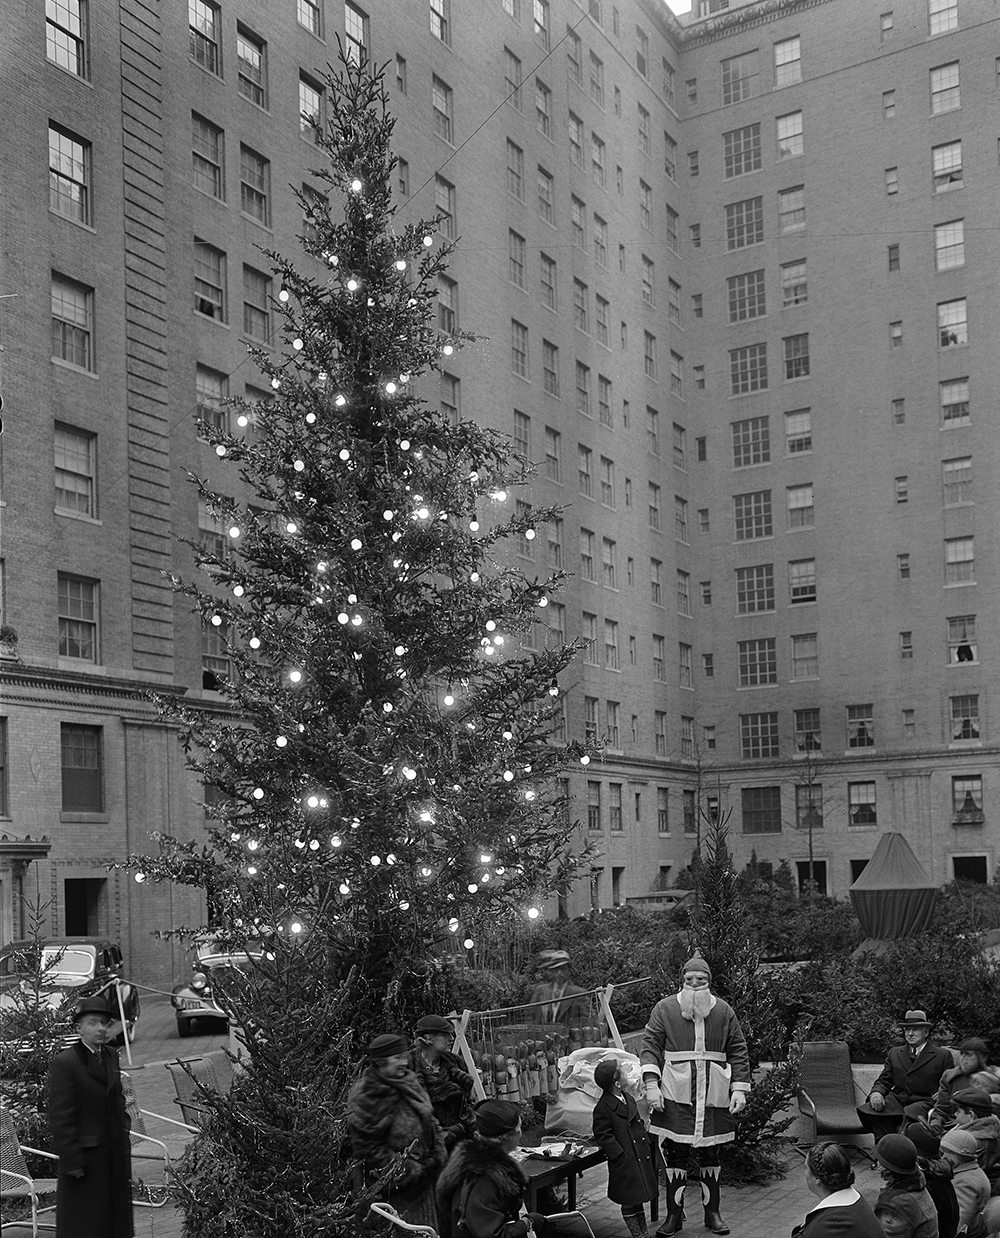 UNITED STATES - DECEMBER 24: Christmas tree in Rockefeller Plaza. (Photo by MCNY/Gottscho-Schleisner/Getty Images)